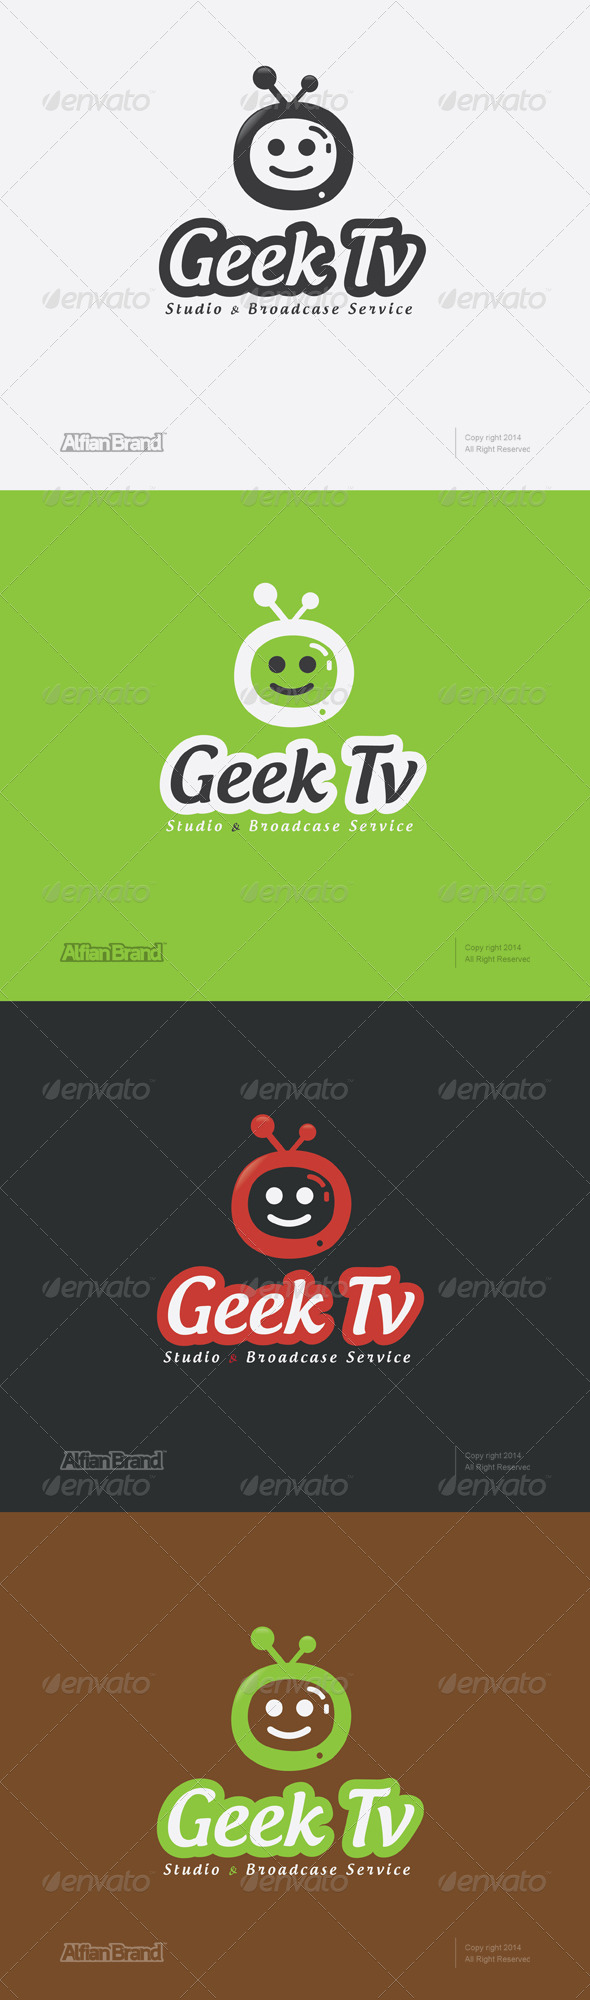 GraphicRiver Geek Tv Logo 7536676